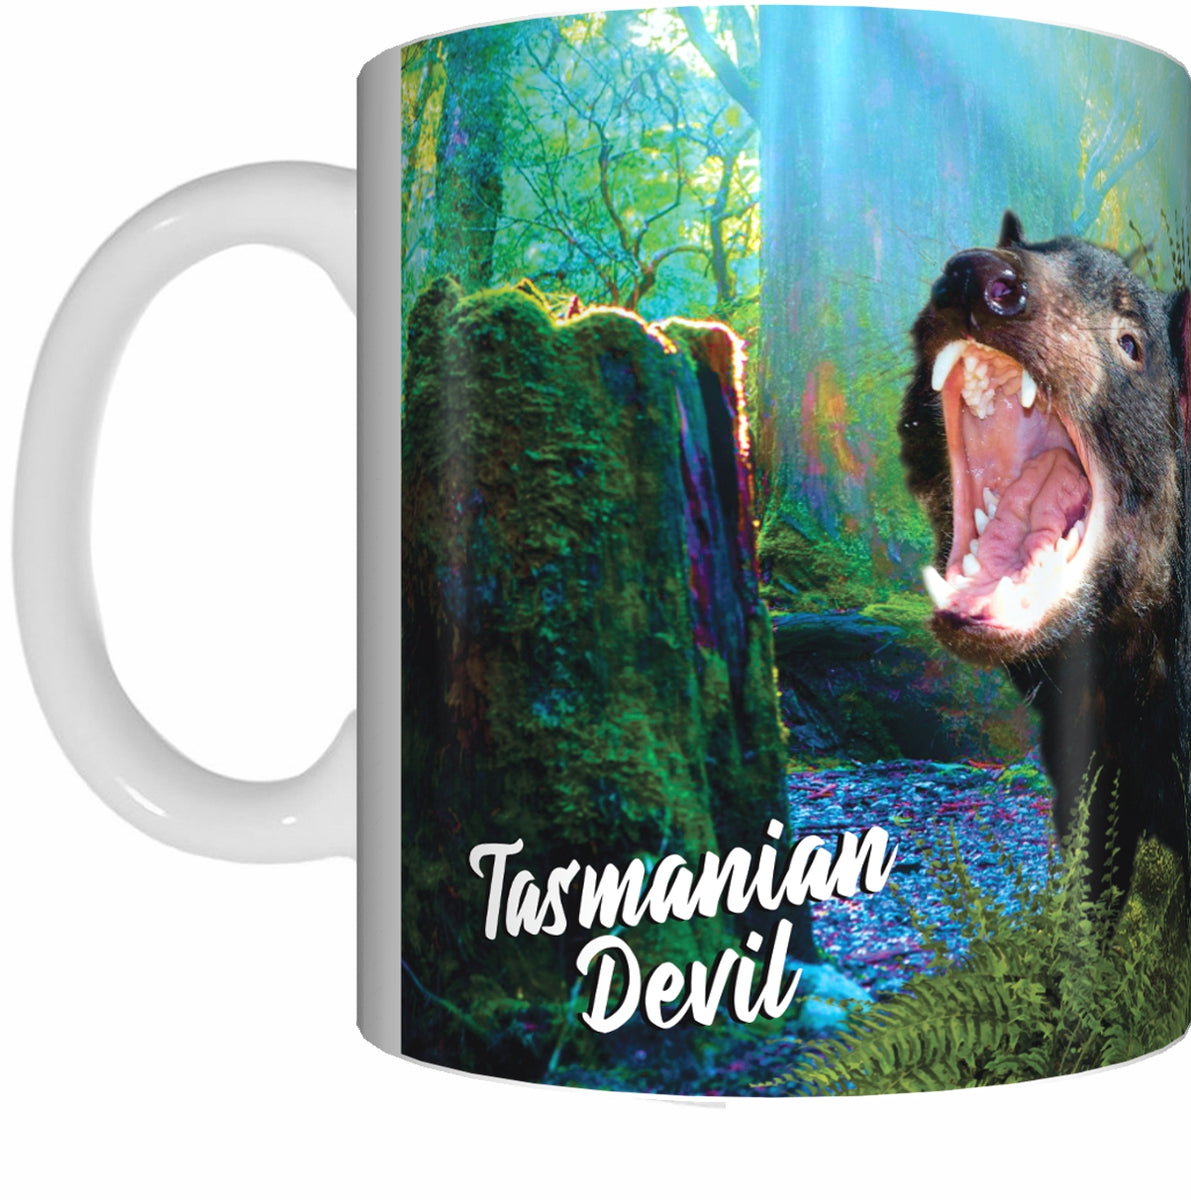 Skip To Content Submit Close Search Fair Dinkum Gifts Submit Search Log In Cart Home Candles Personalised Products Drinkware Drinkware Menu Drinkware Mugs Travel Mugs Drink Bottles Pvc Mugs Drink Holders Stubbies Glassware Gifts Gifts Menu